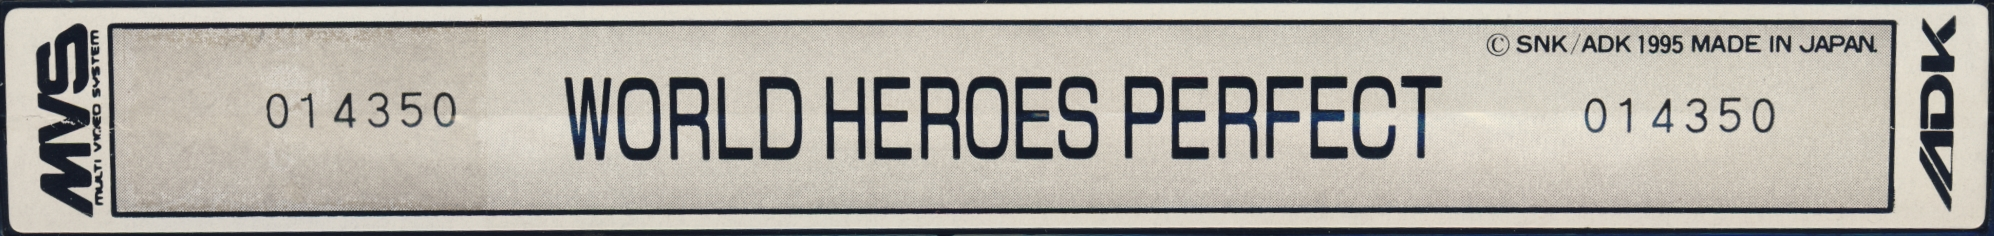 World heroes perfect us label.jpg